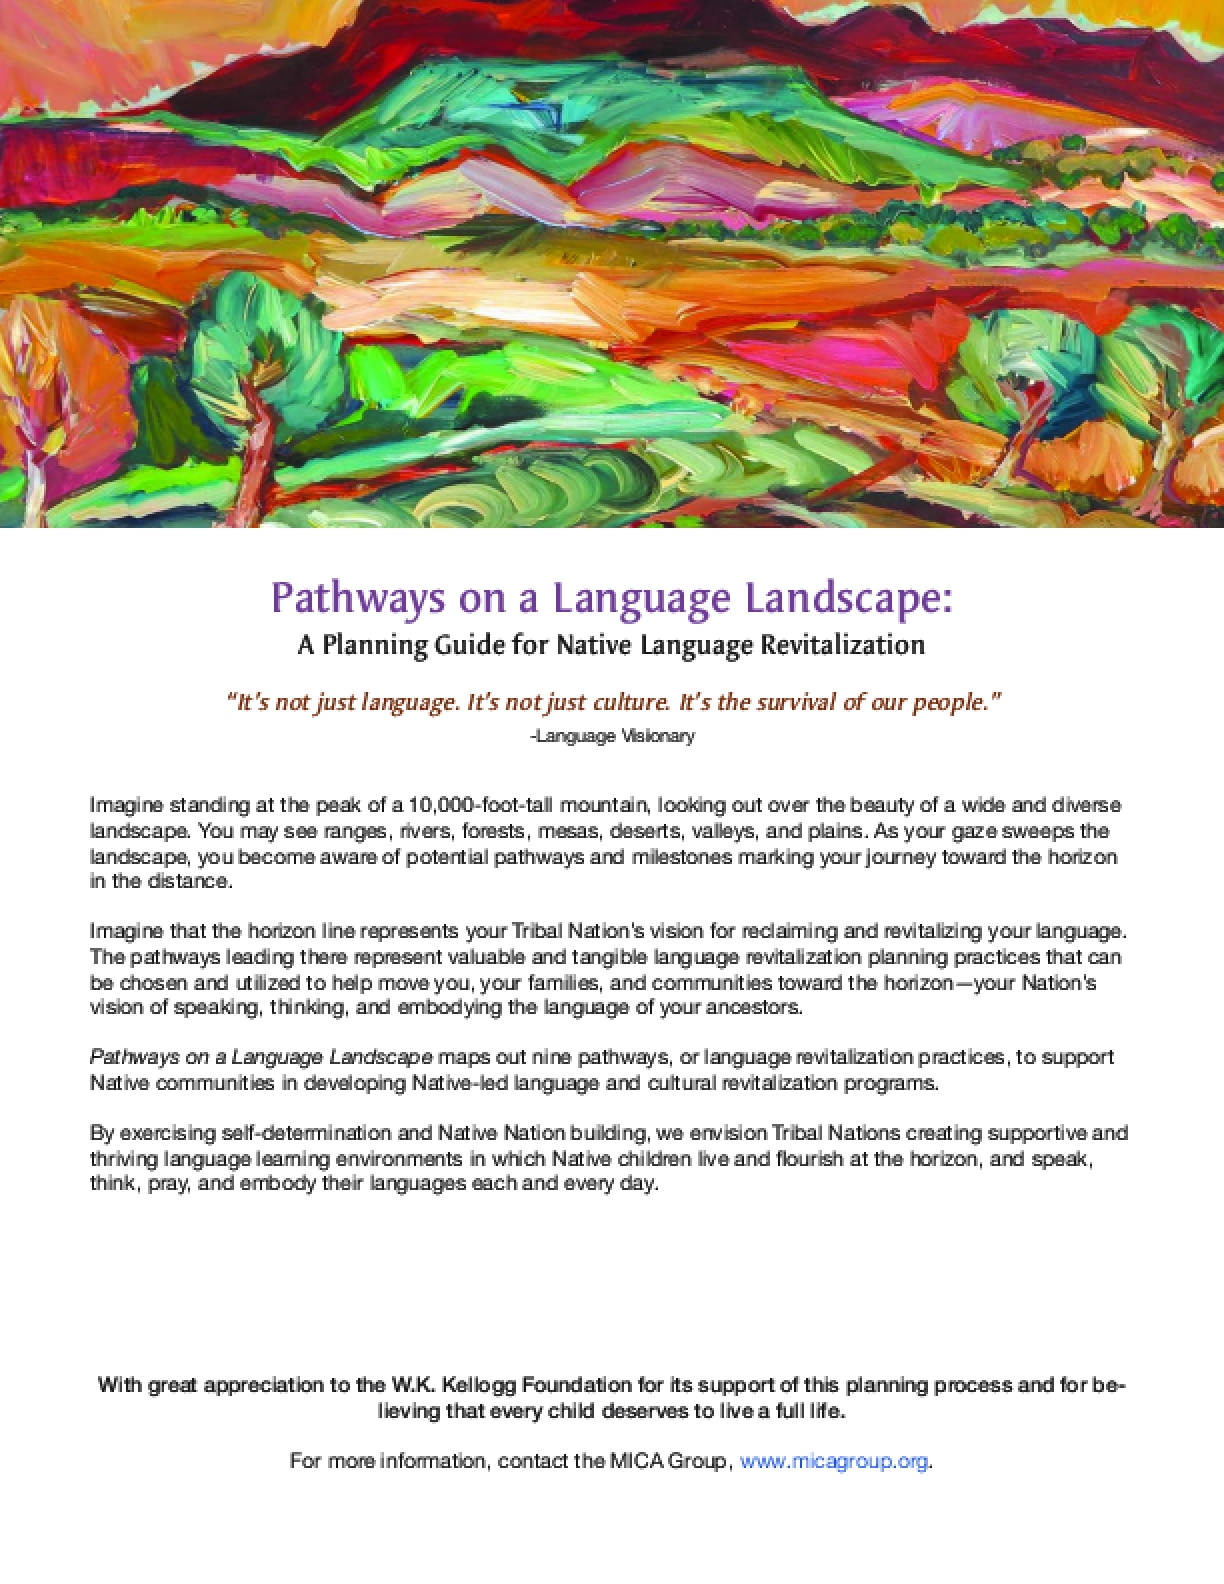 Pathways on a Language Landscape: A Planning Guide for Native Language Revitalization